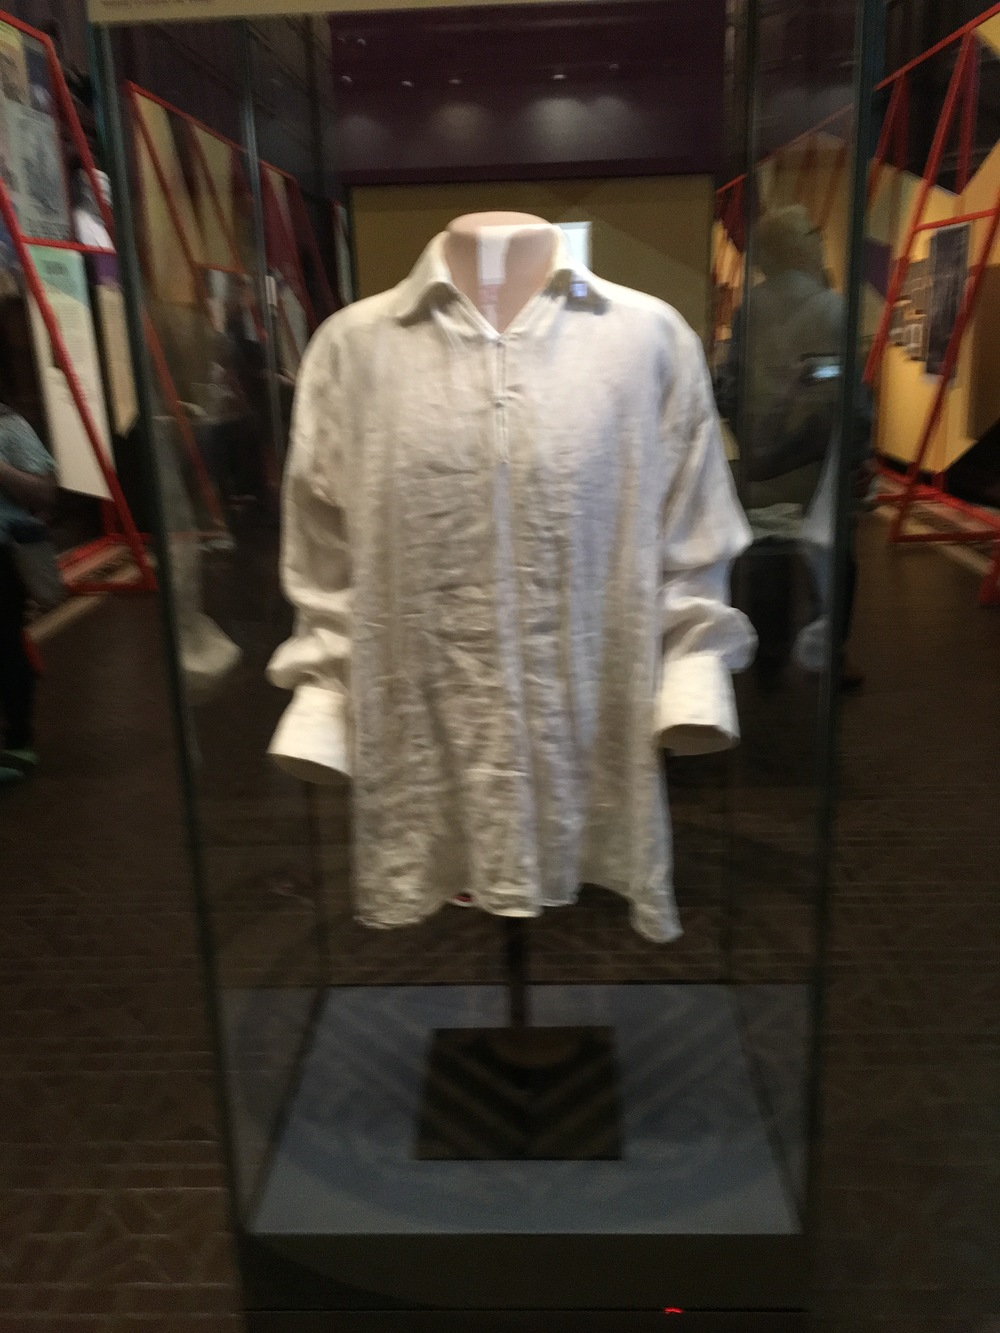 """The Shirt"" at the Folger Shakespeare Library"